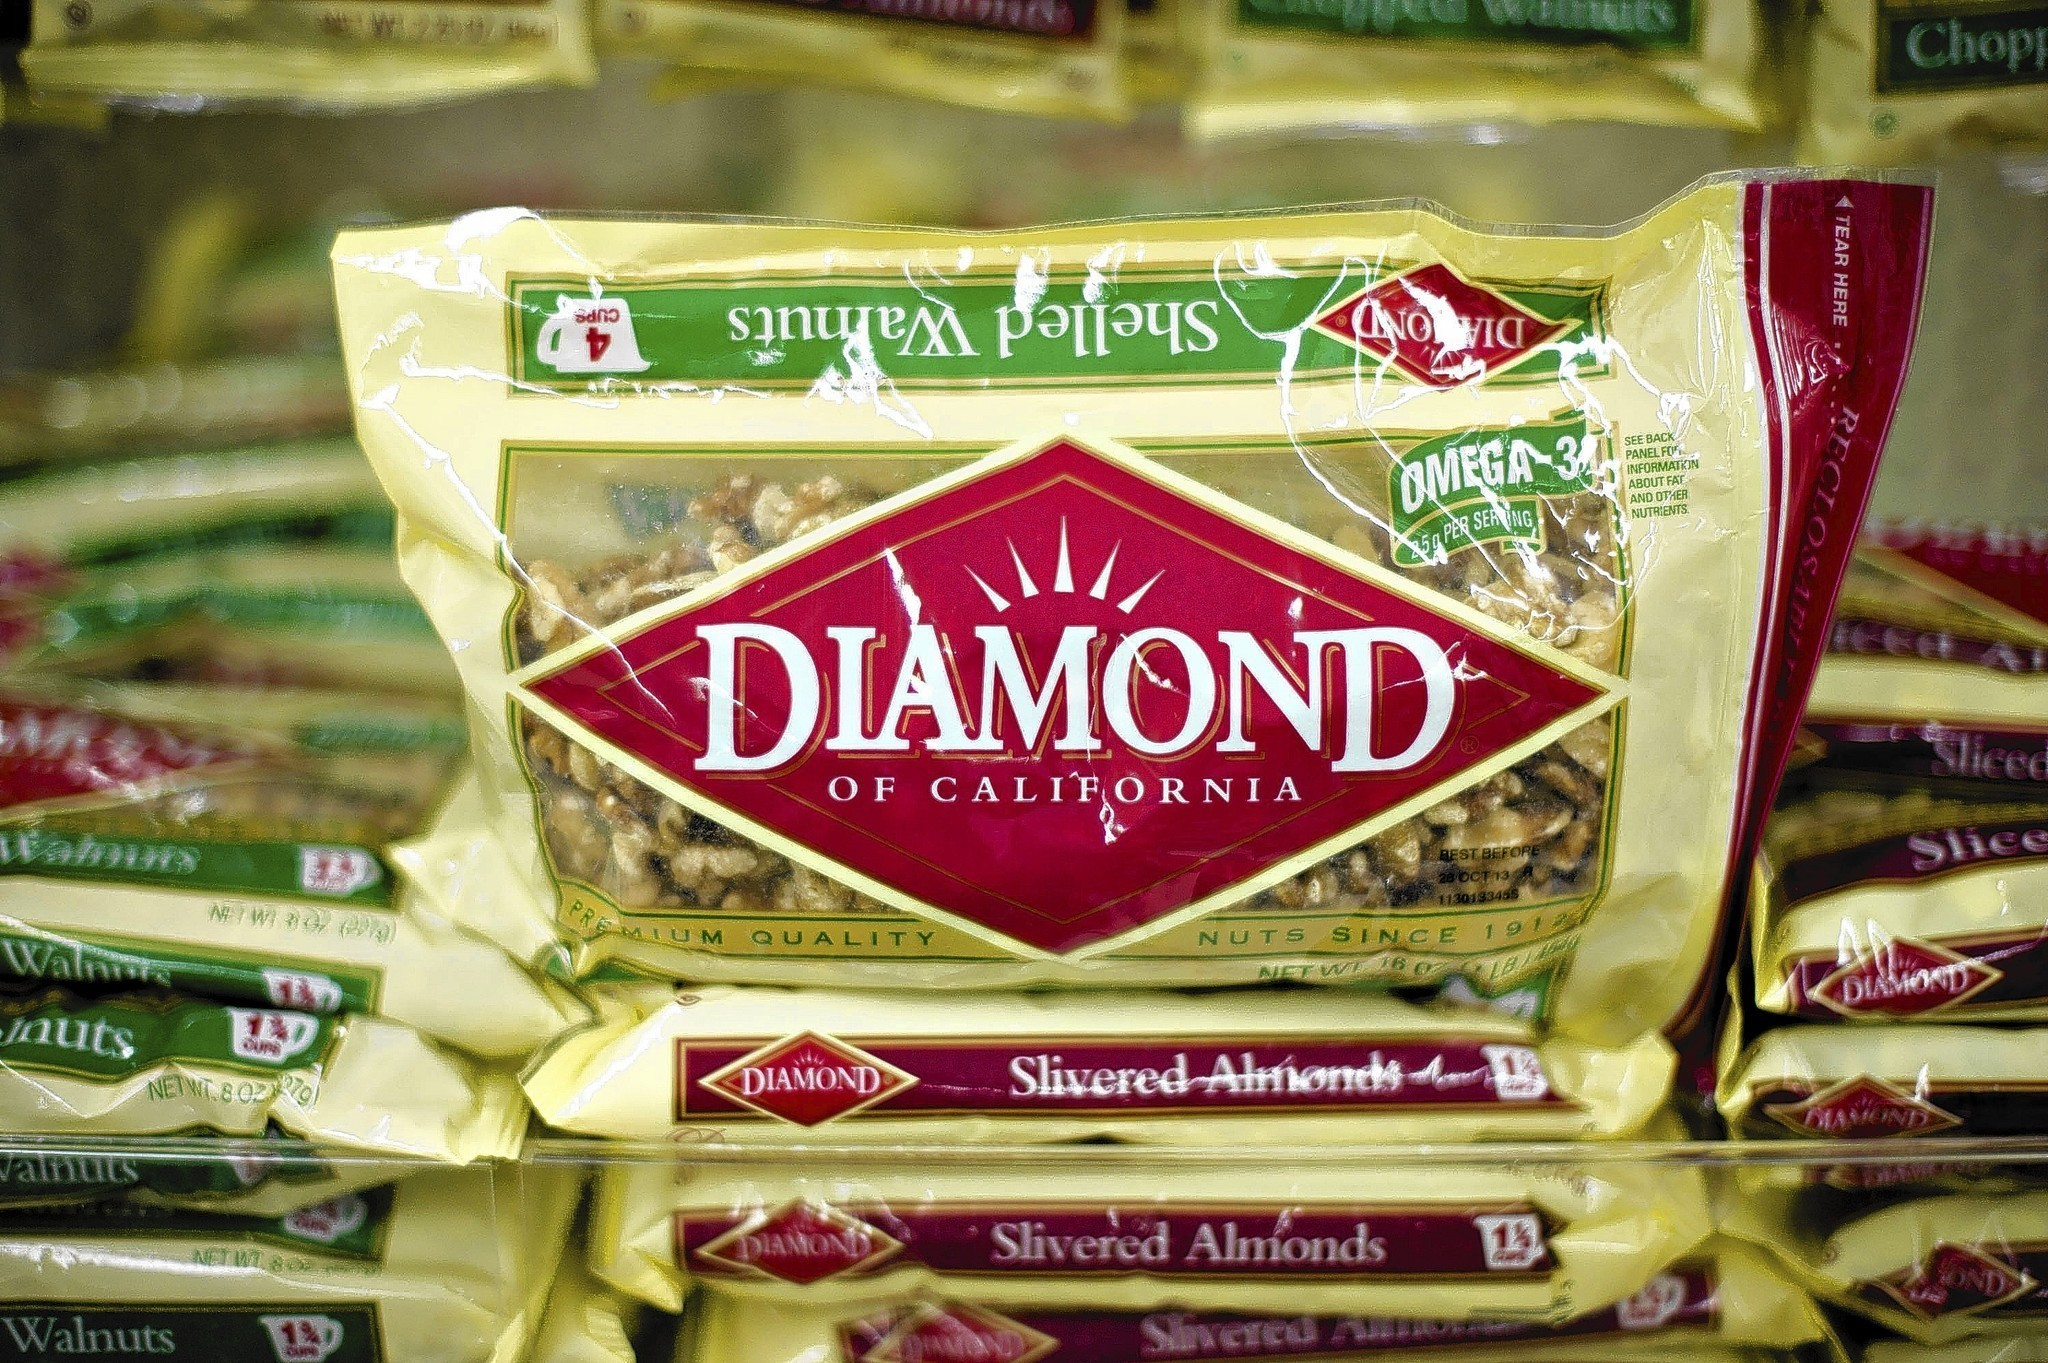 diamond foods fraud The primary function of the audit committee is to provide advice with respect to diamond foods' financial matters and to assist the board of directors in.